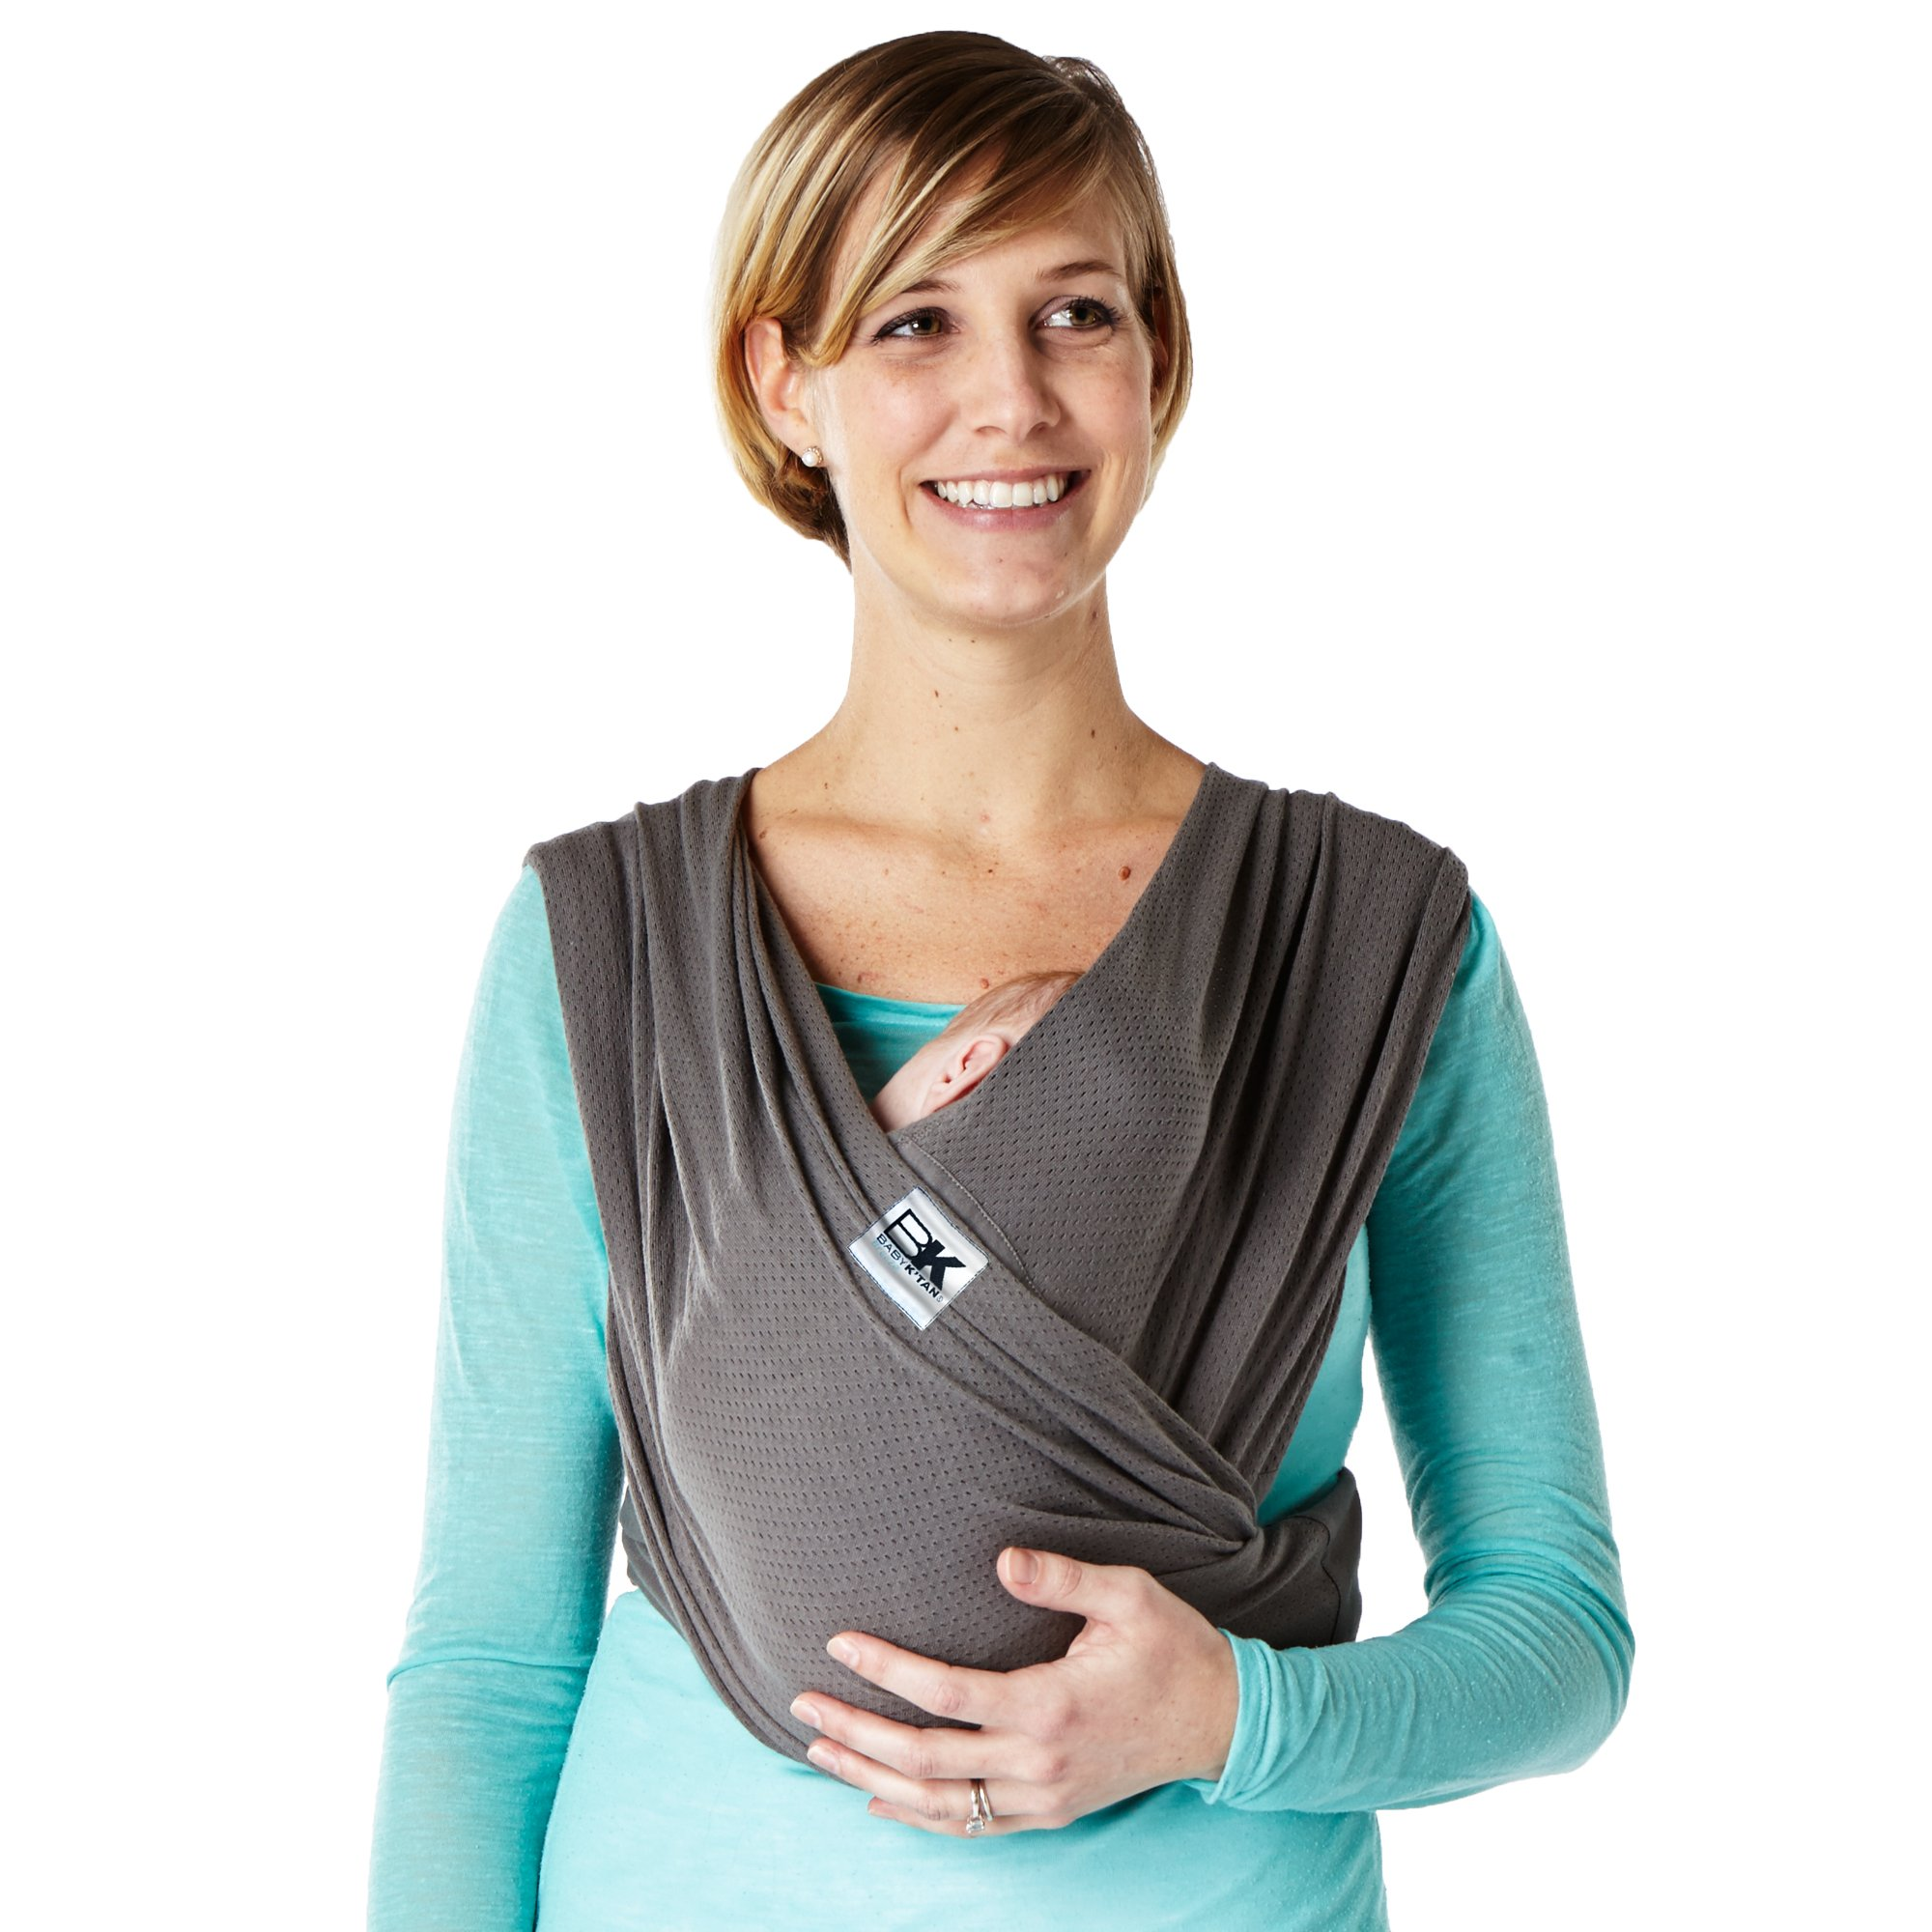 Baby K'tan Breeze Baby Wrap Carrier, Infant and Child Sling - Simple Wrap Holder for Babywearing - No Rings or Buckles - Carry Newborn up to 35 lbs, Charcoal, Large (W Dress 16-20 / M Jacket 43-46)